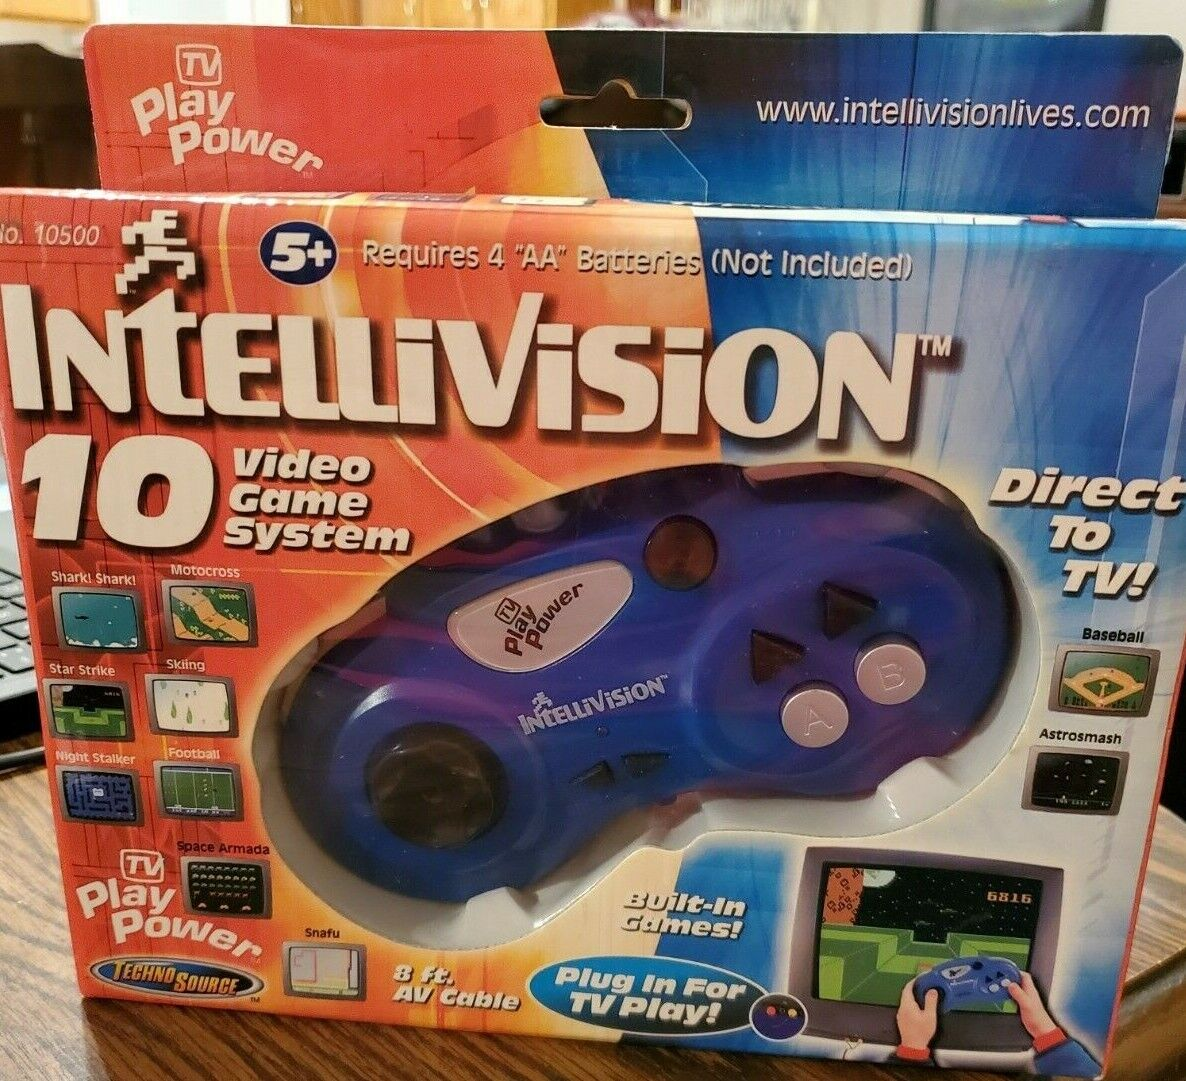 Intellivision Plug N Play 10 Video Game System TV Play Power New